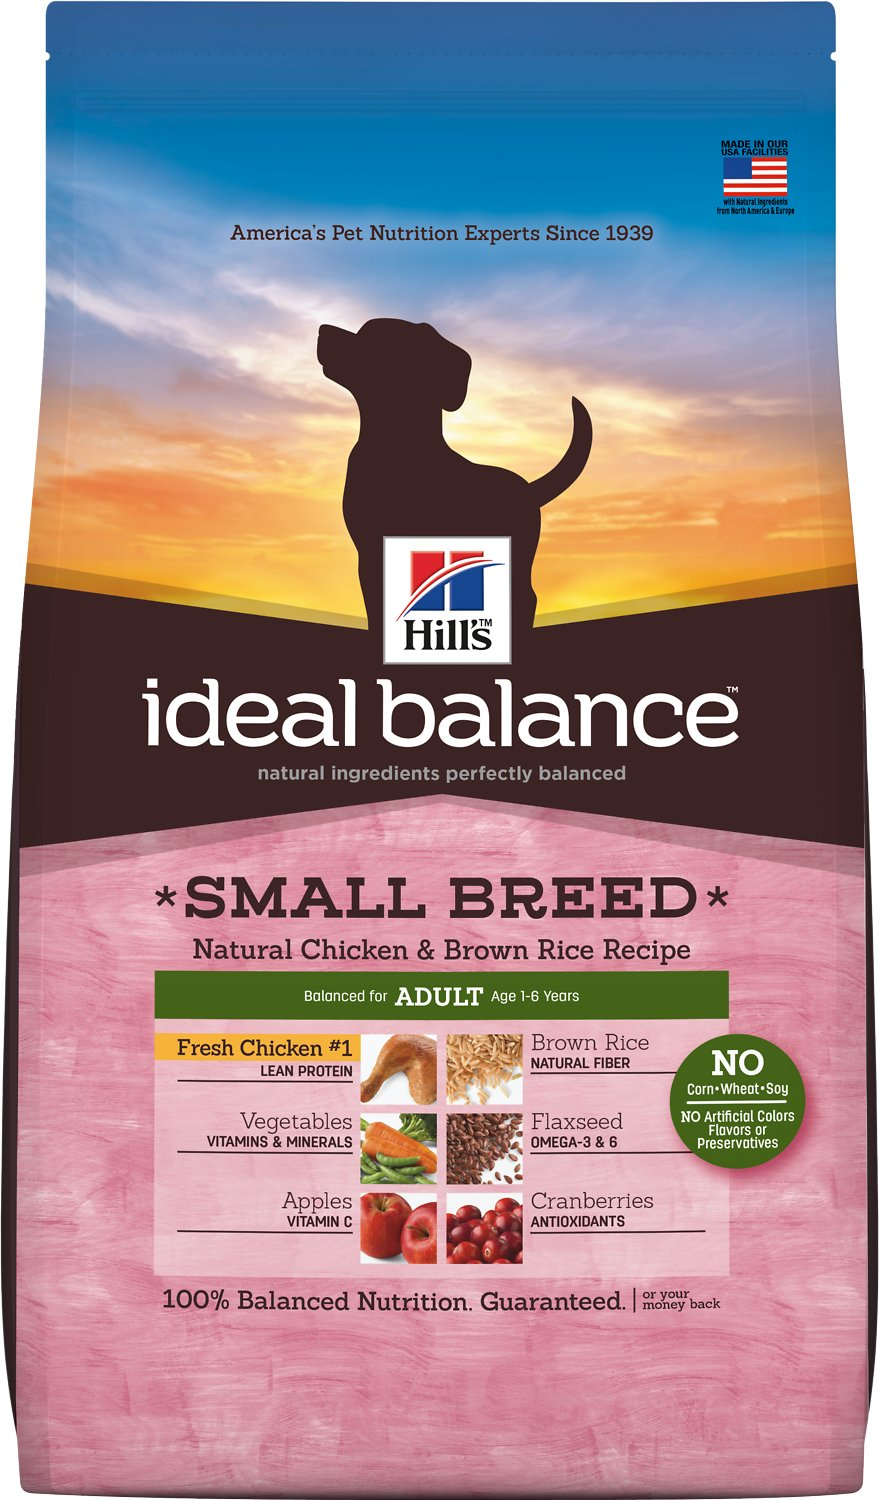 Ideal Balance Dog Food >> Hill S Ideal Balance Small Breed Natural Chicken Brown Rice